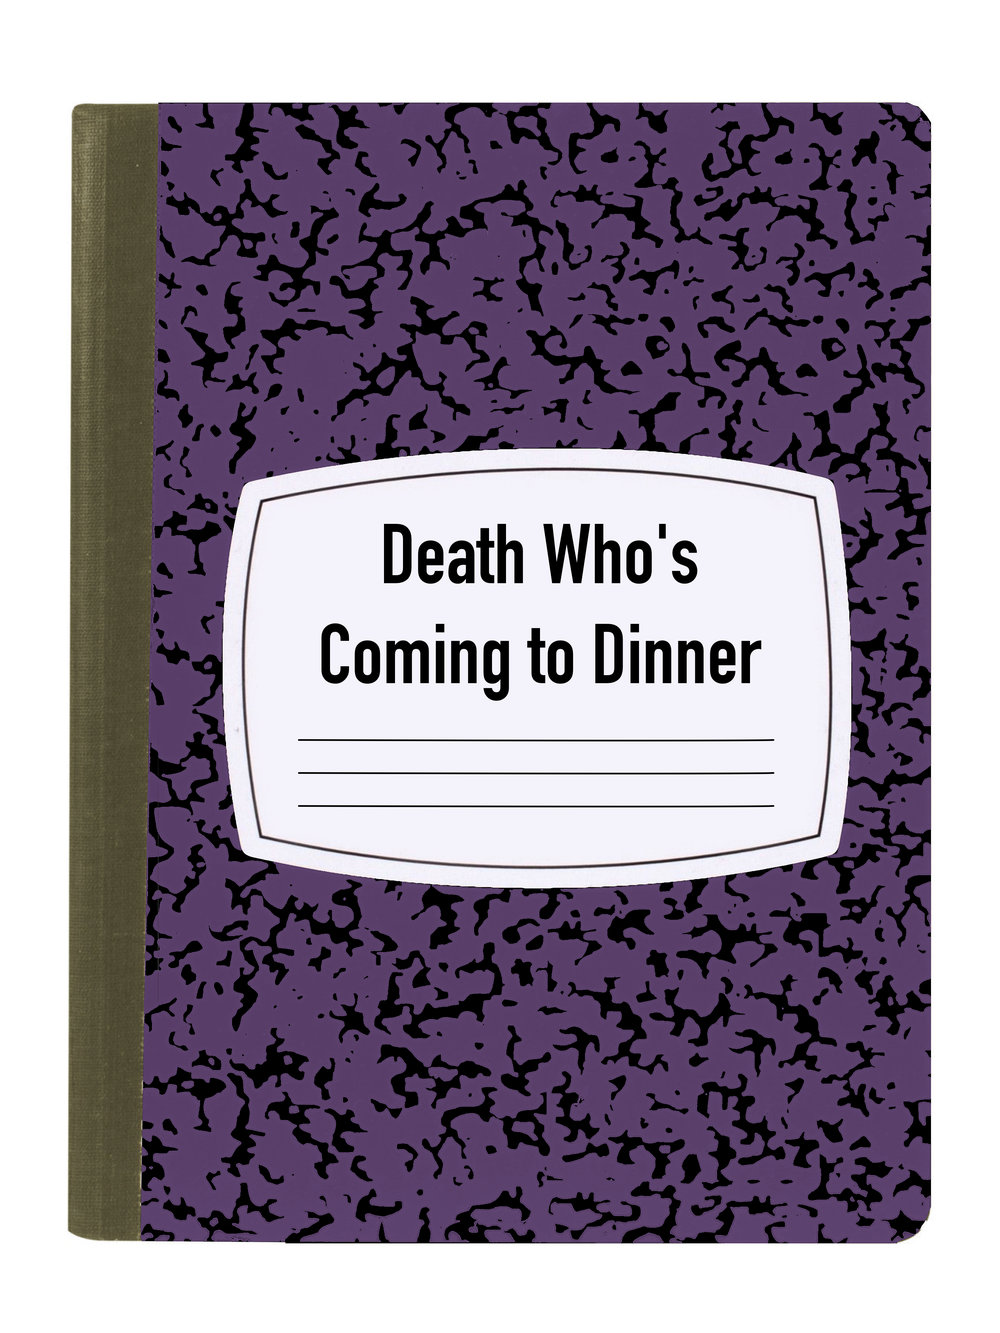 DEATH WHO'S COMING TO DINNER